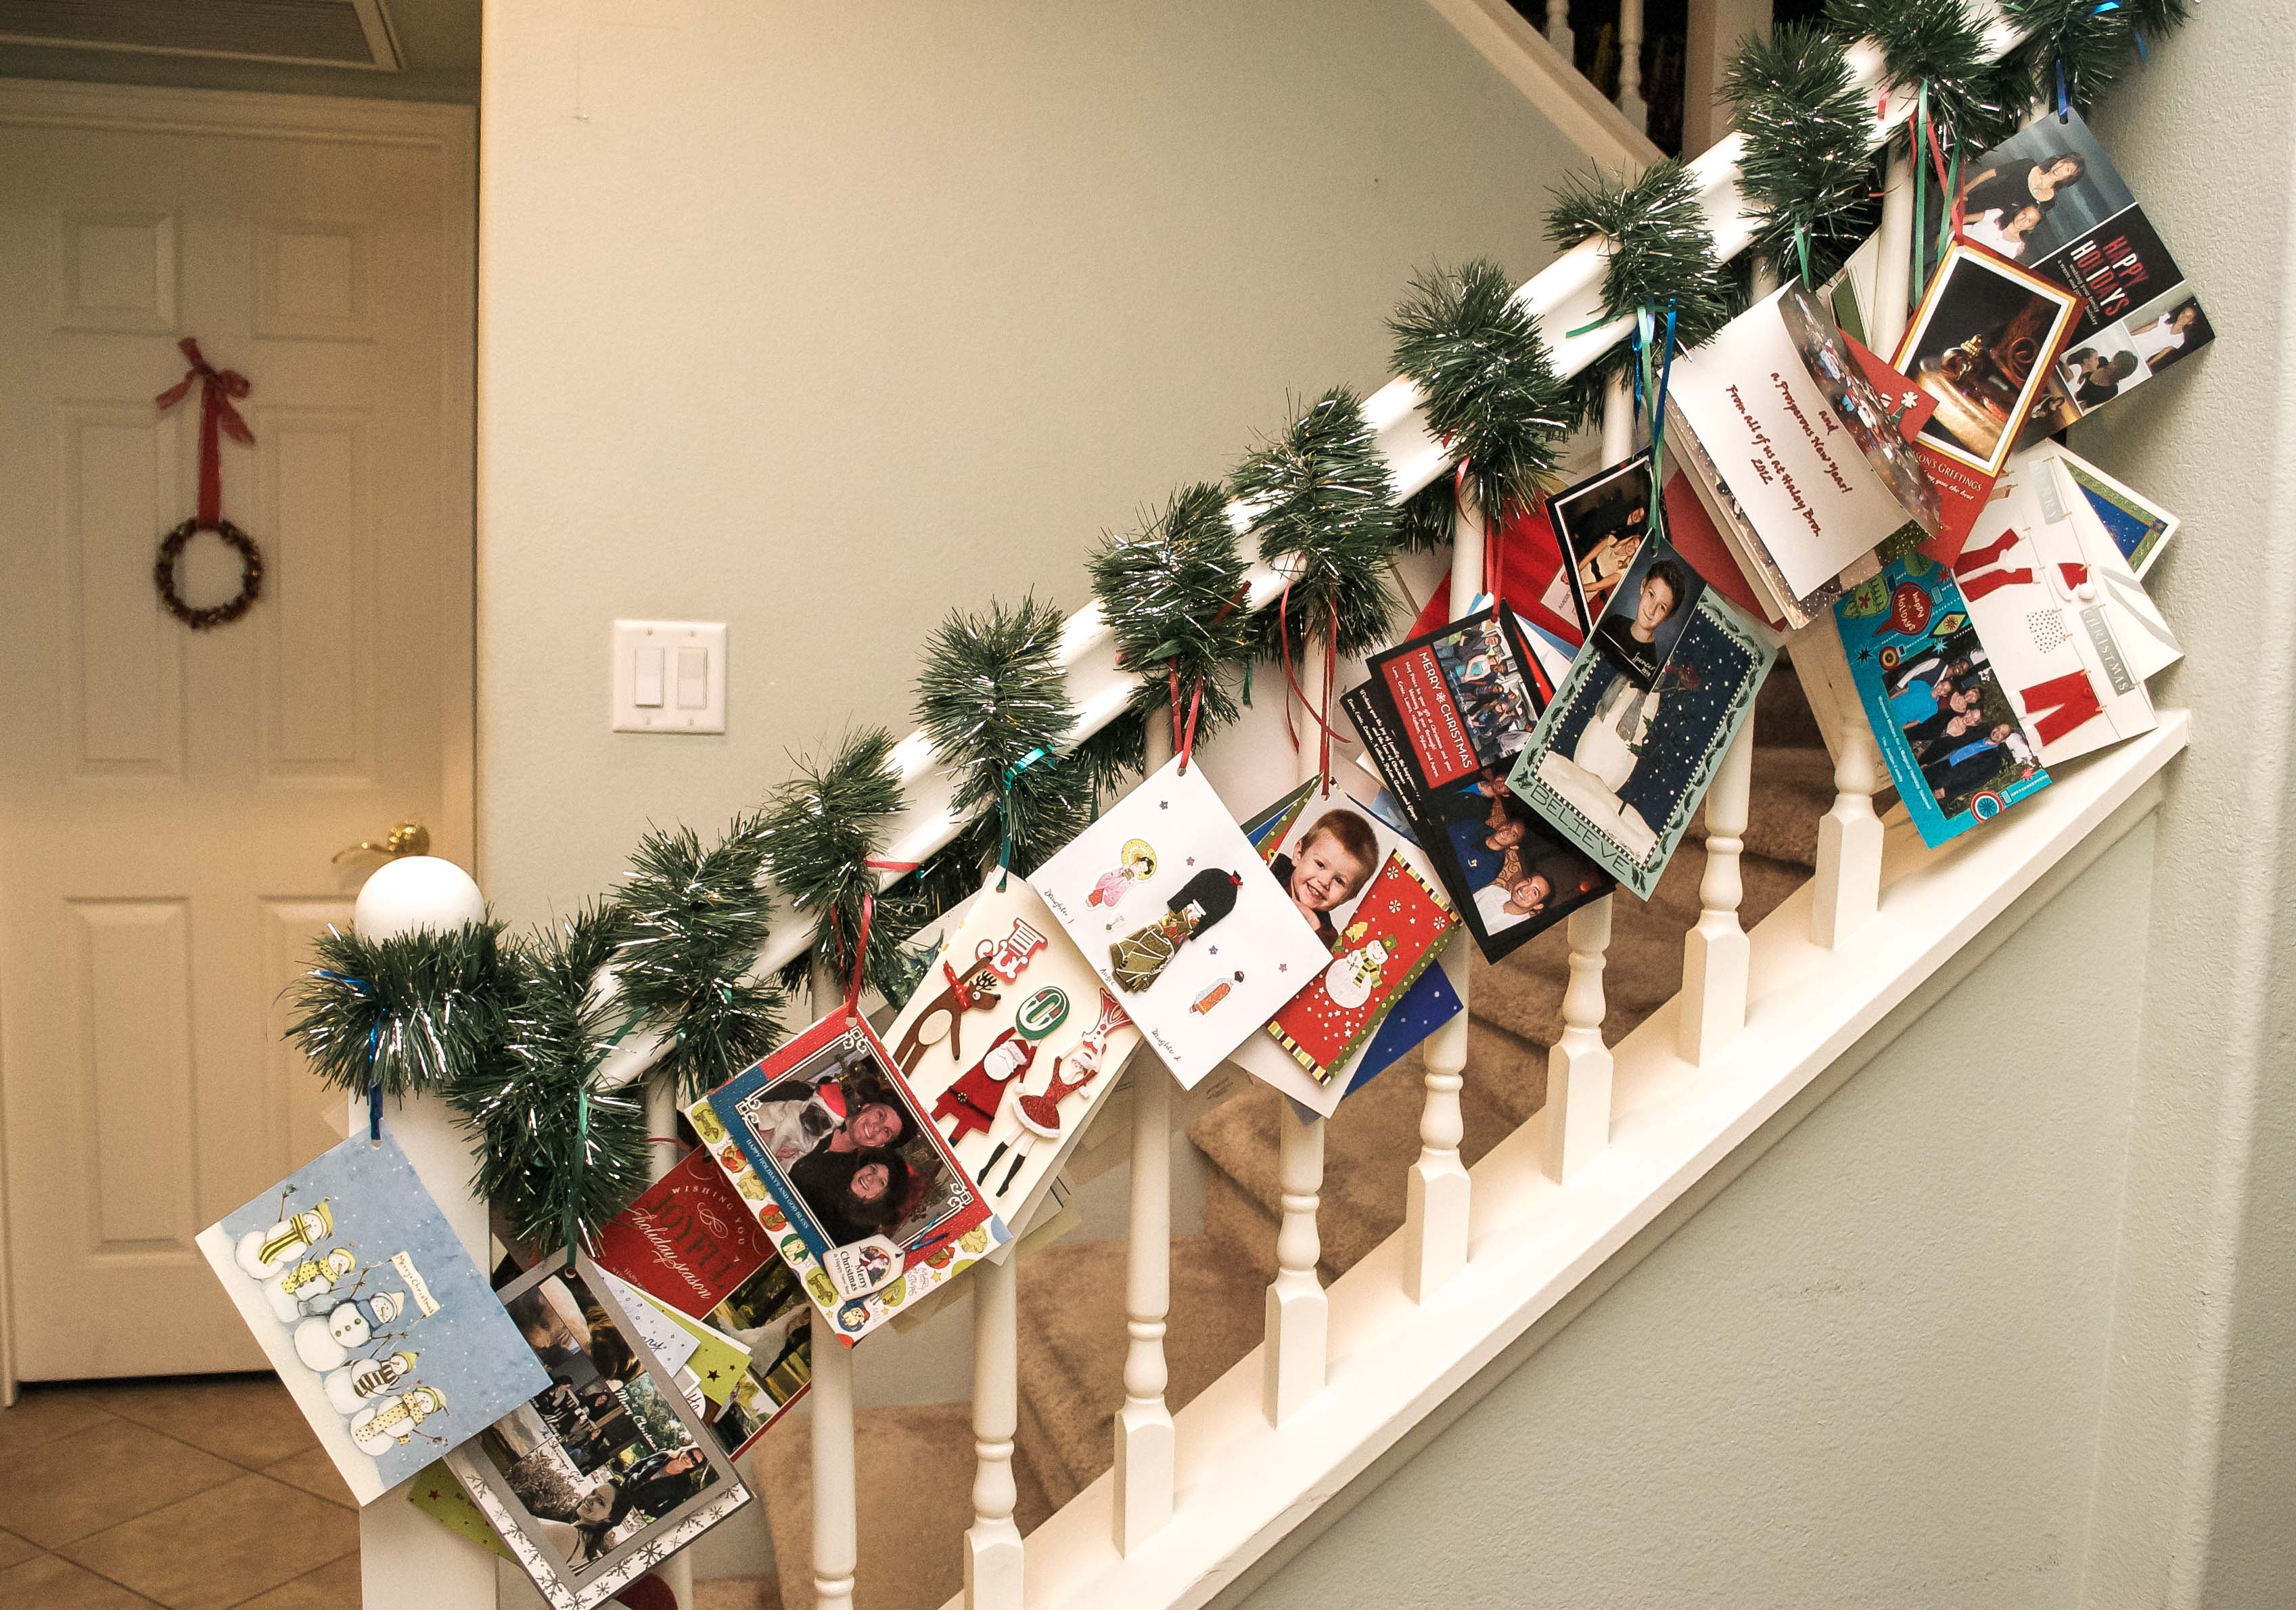 15 Christmas Card Display Ideas - The Organised Housewife